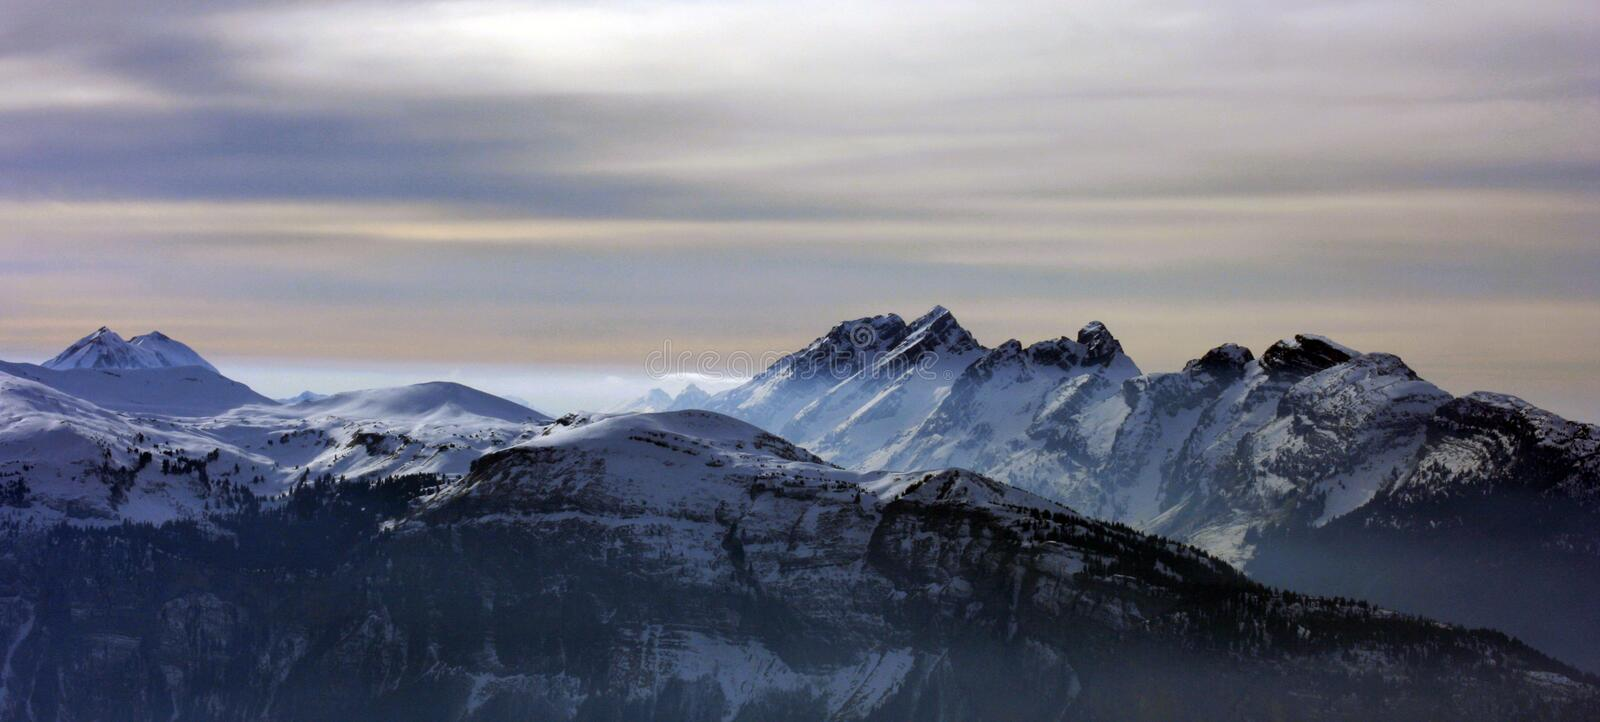 Mountains with lighting fog royalty free stock photos